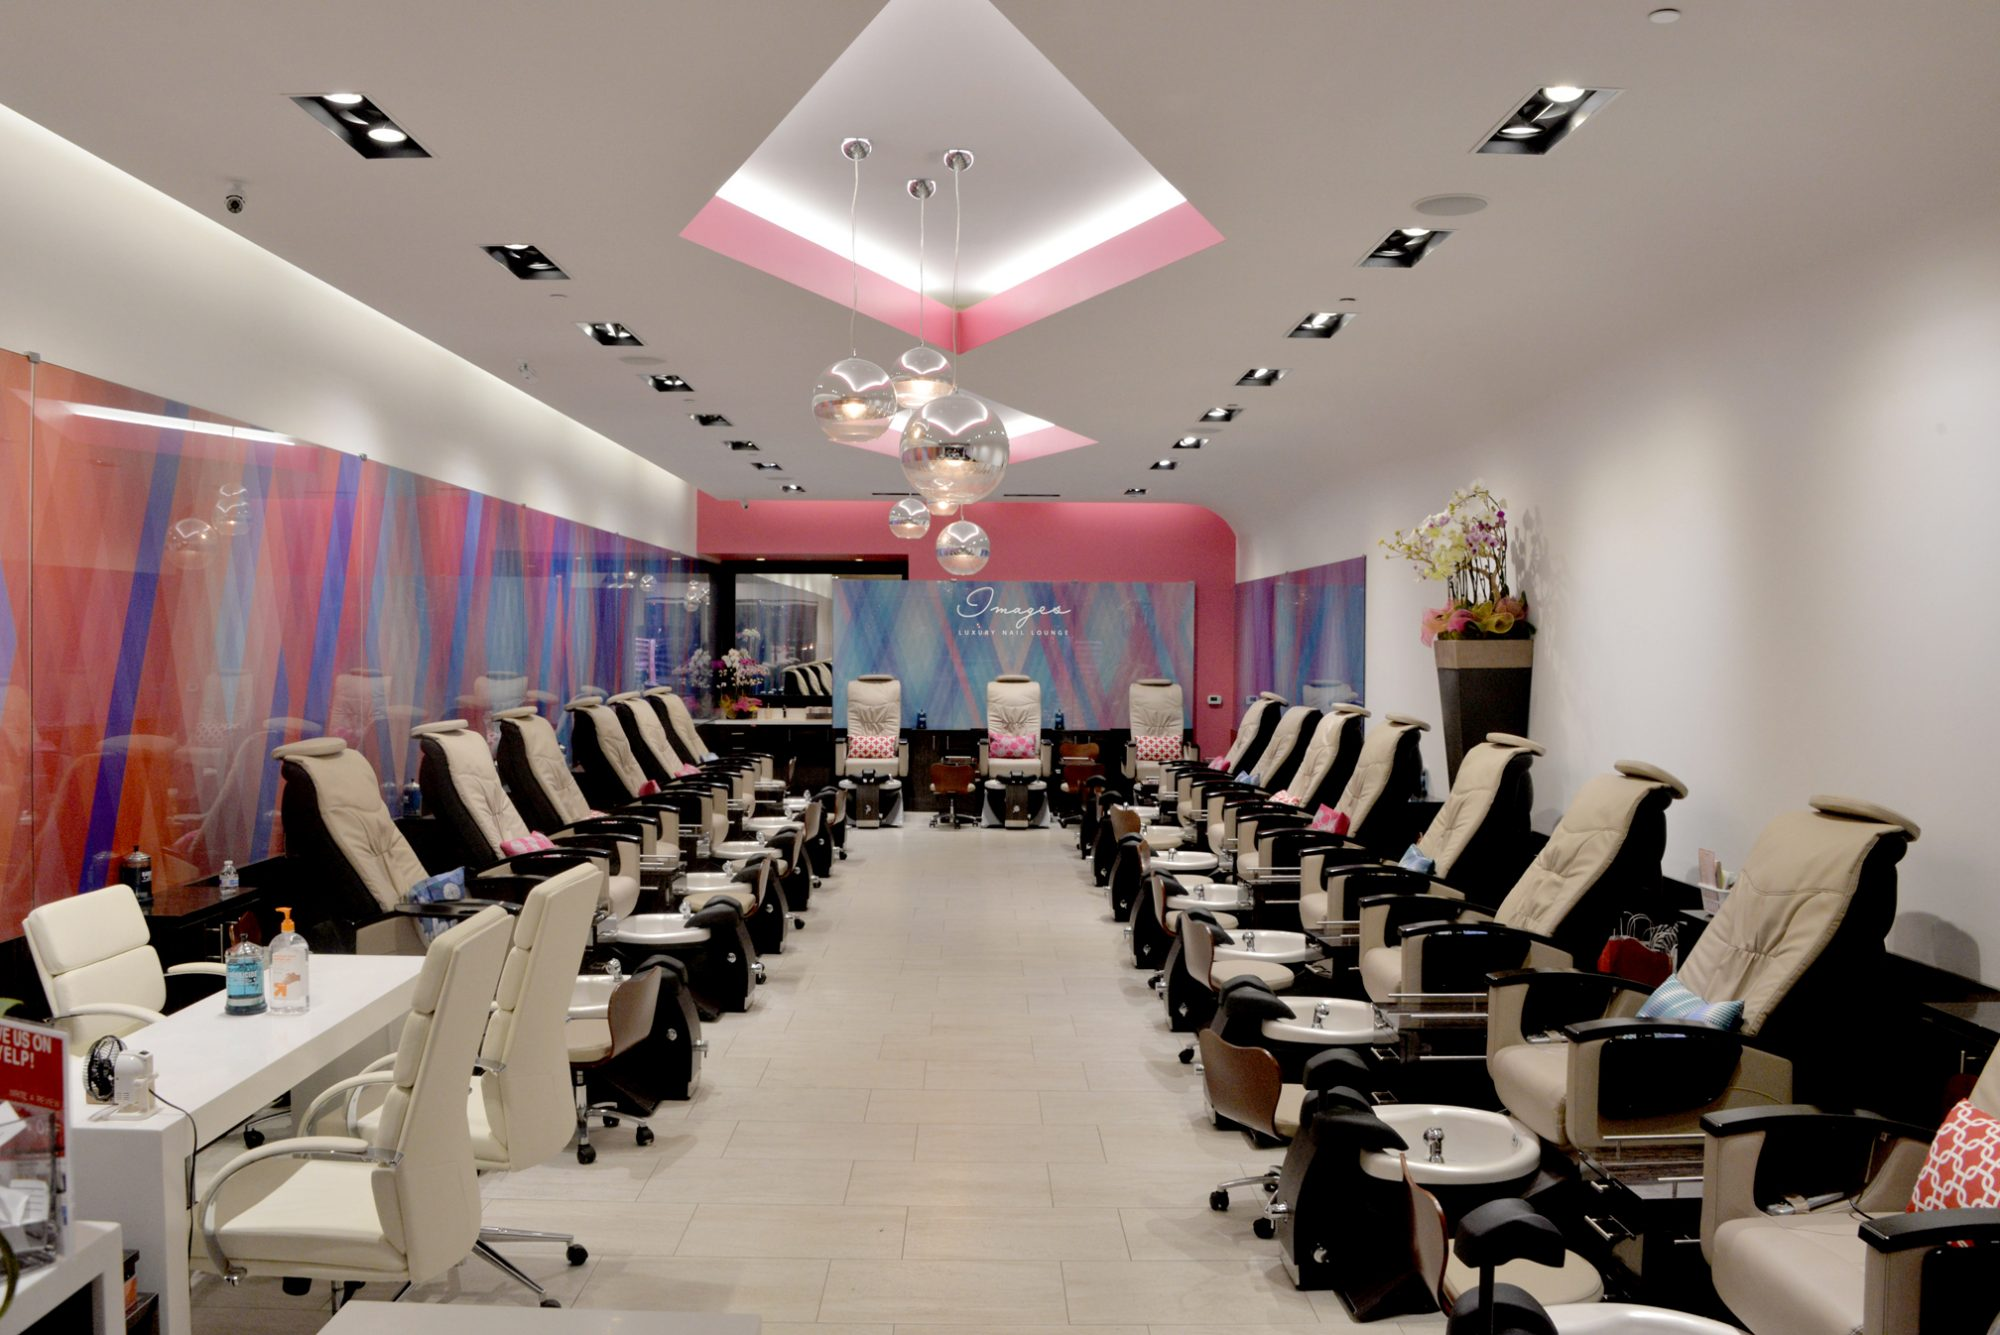 Could This Be The Most Expensive Nail Salon Ever